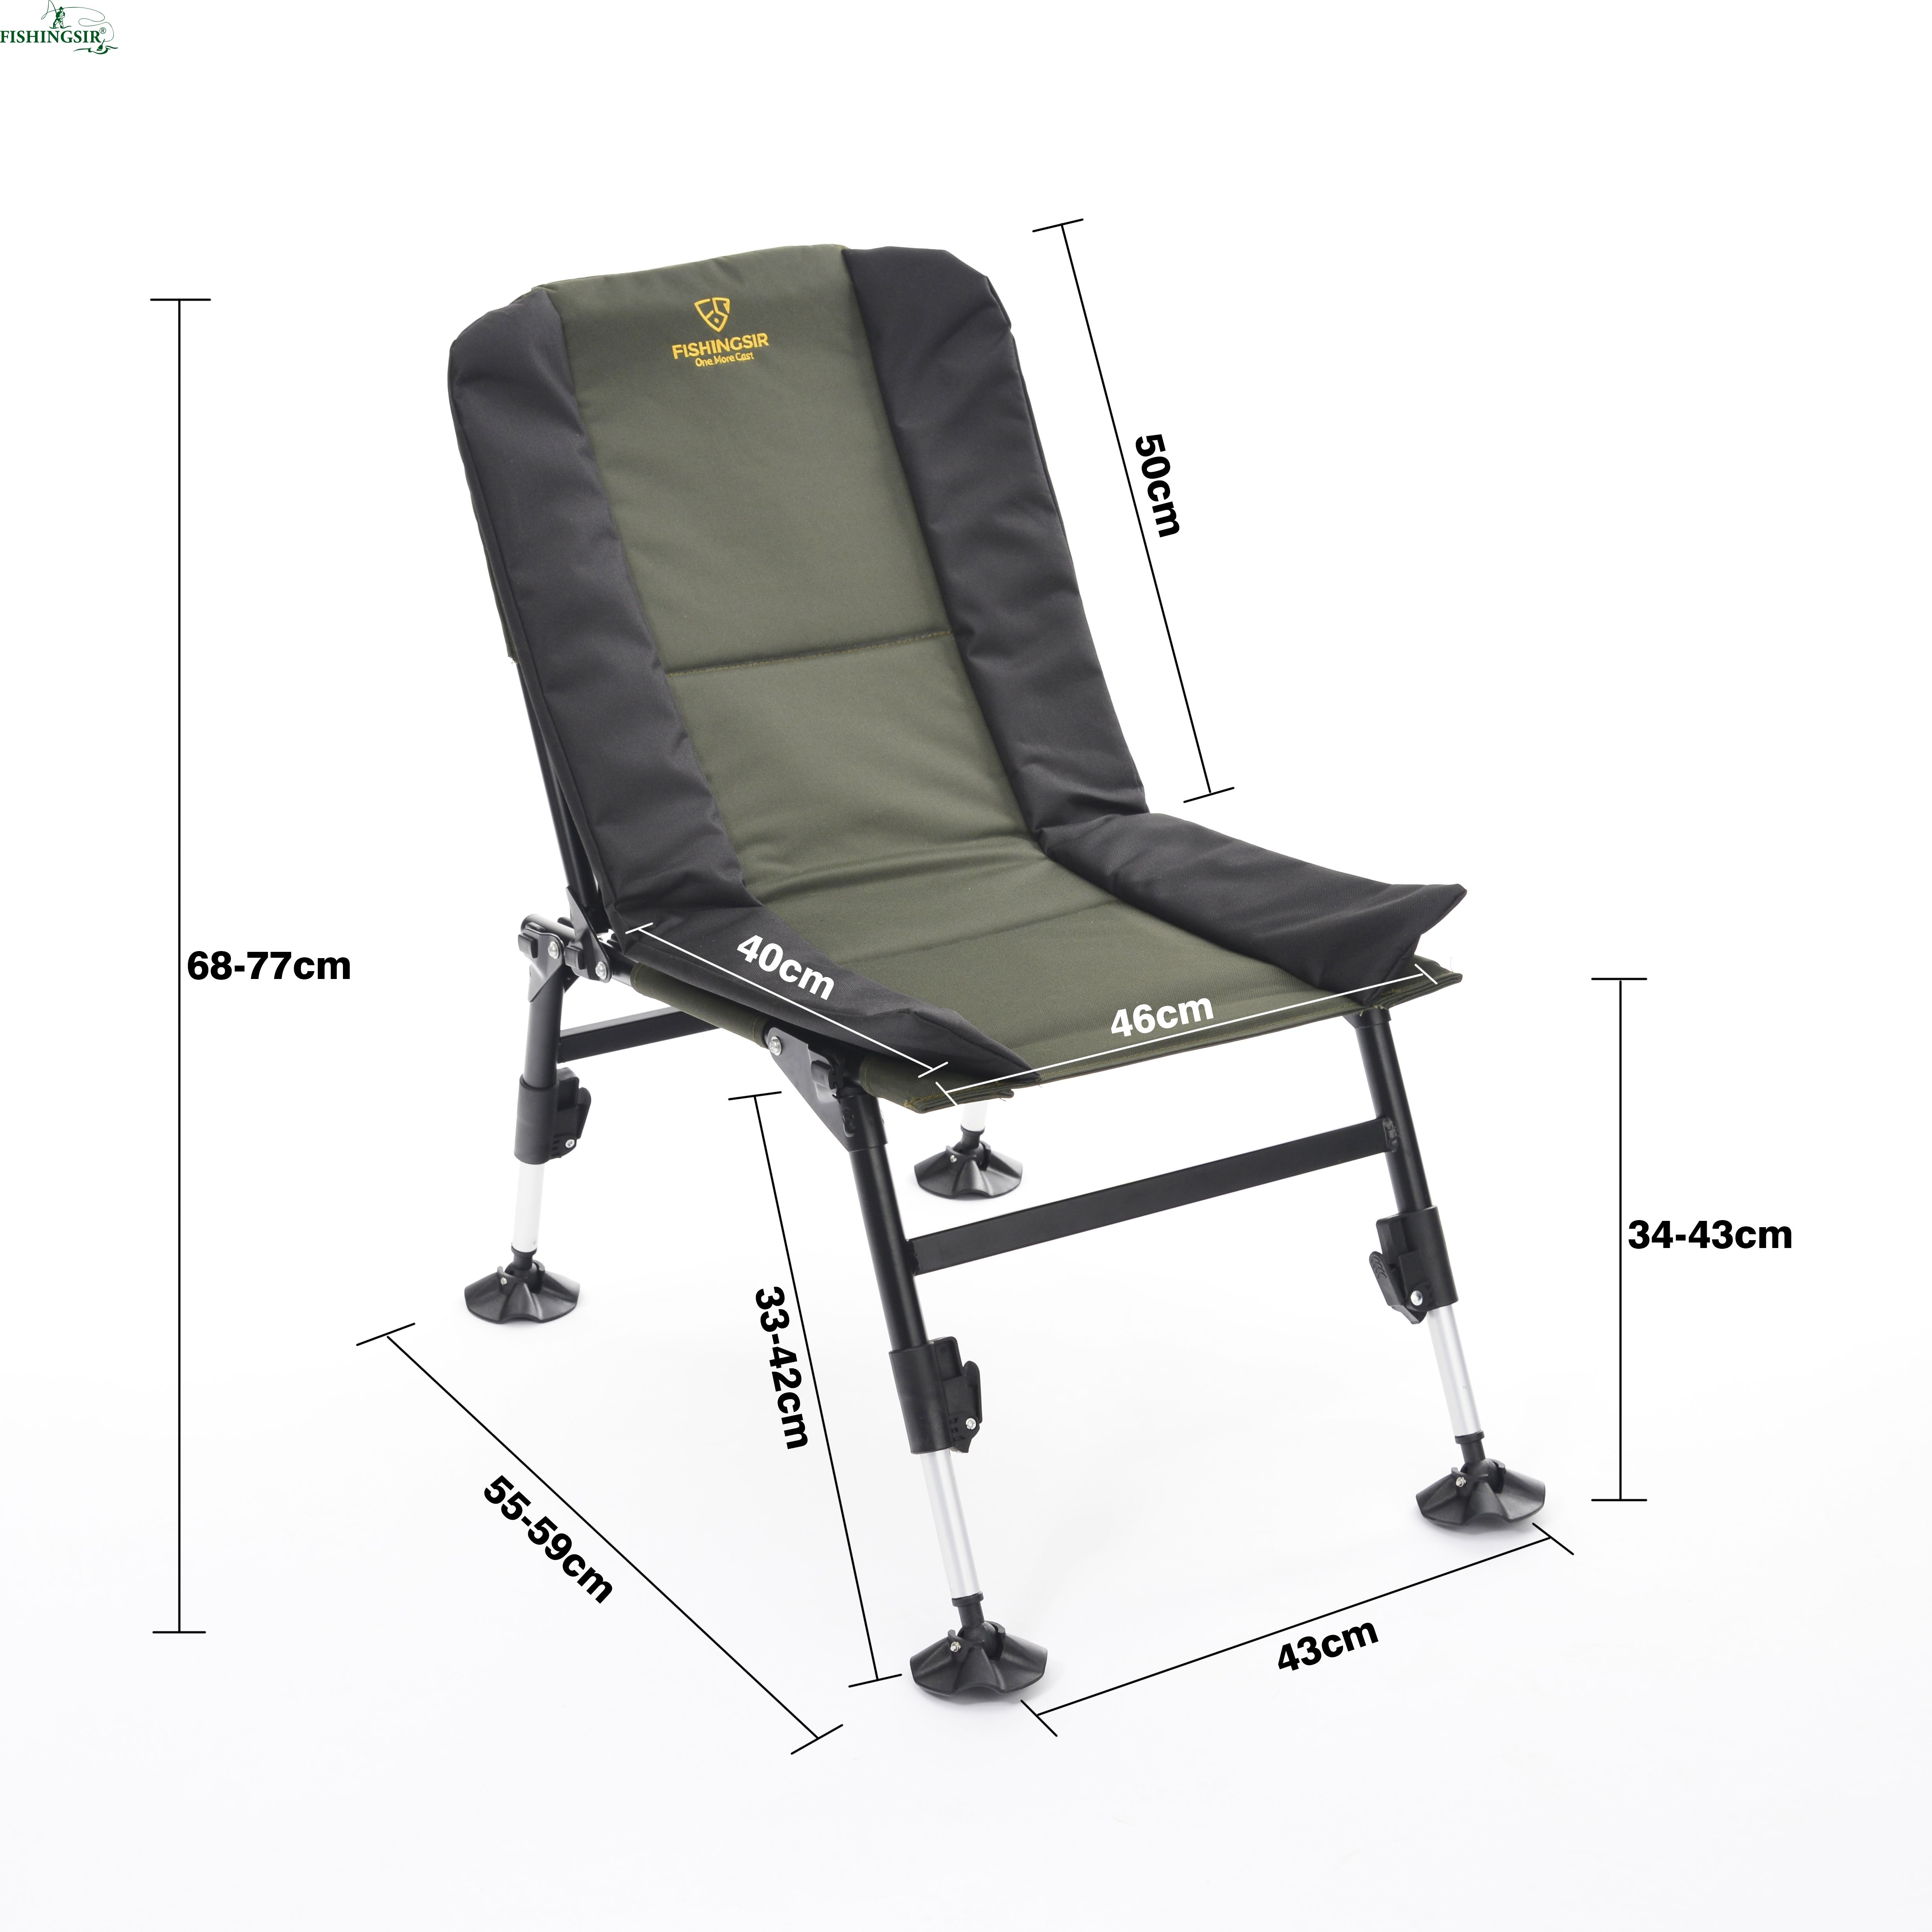 Picnic Chairs Outdoor Portable Ultimate Breathable Folding Picnic Fishing